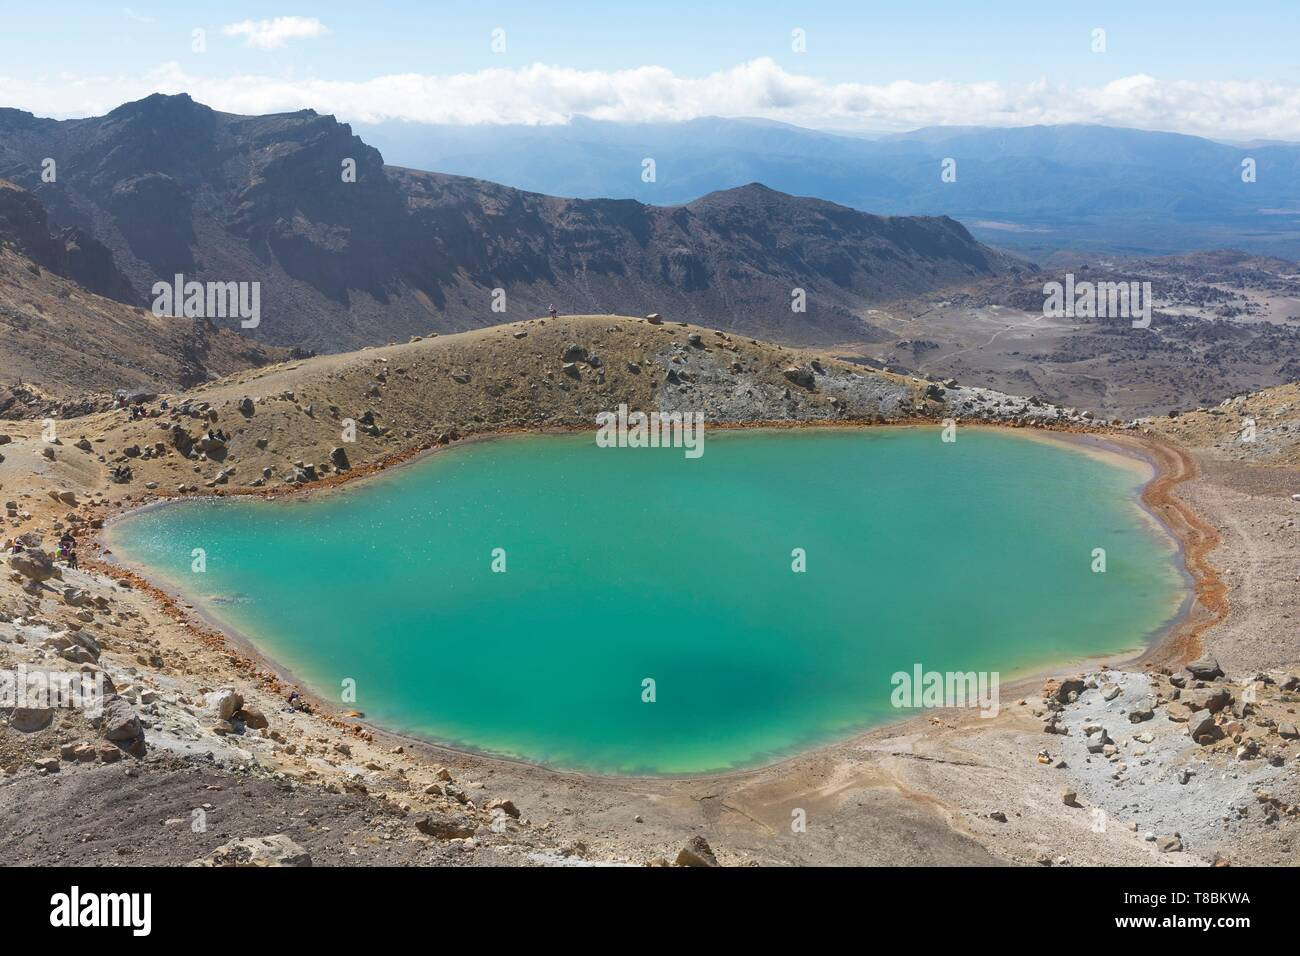 New Zealand, North Island, Waikato region, Tongariro National Park, 1967 m, labelled Unesco World Heritage Site, Tongariro Alpine crossing, Emerald lake - Stock Image